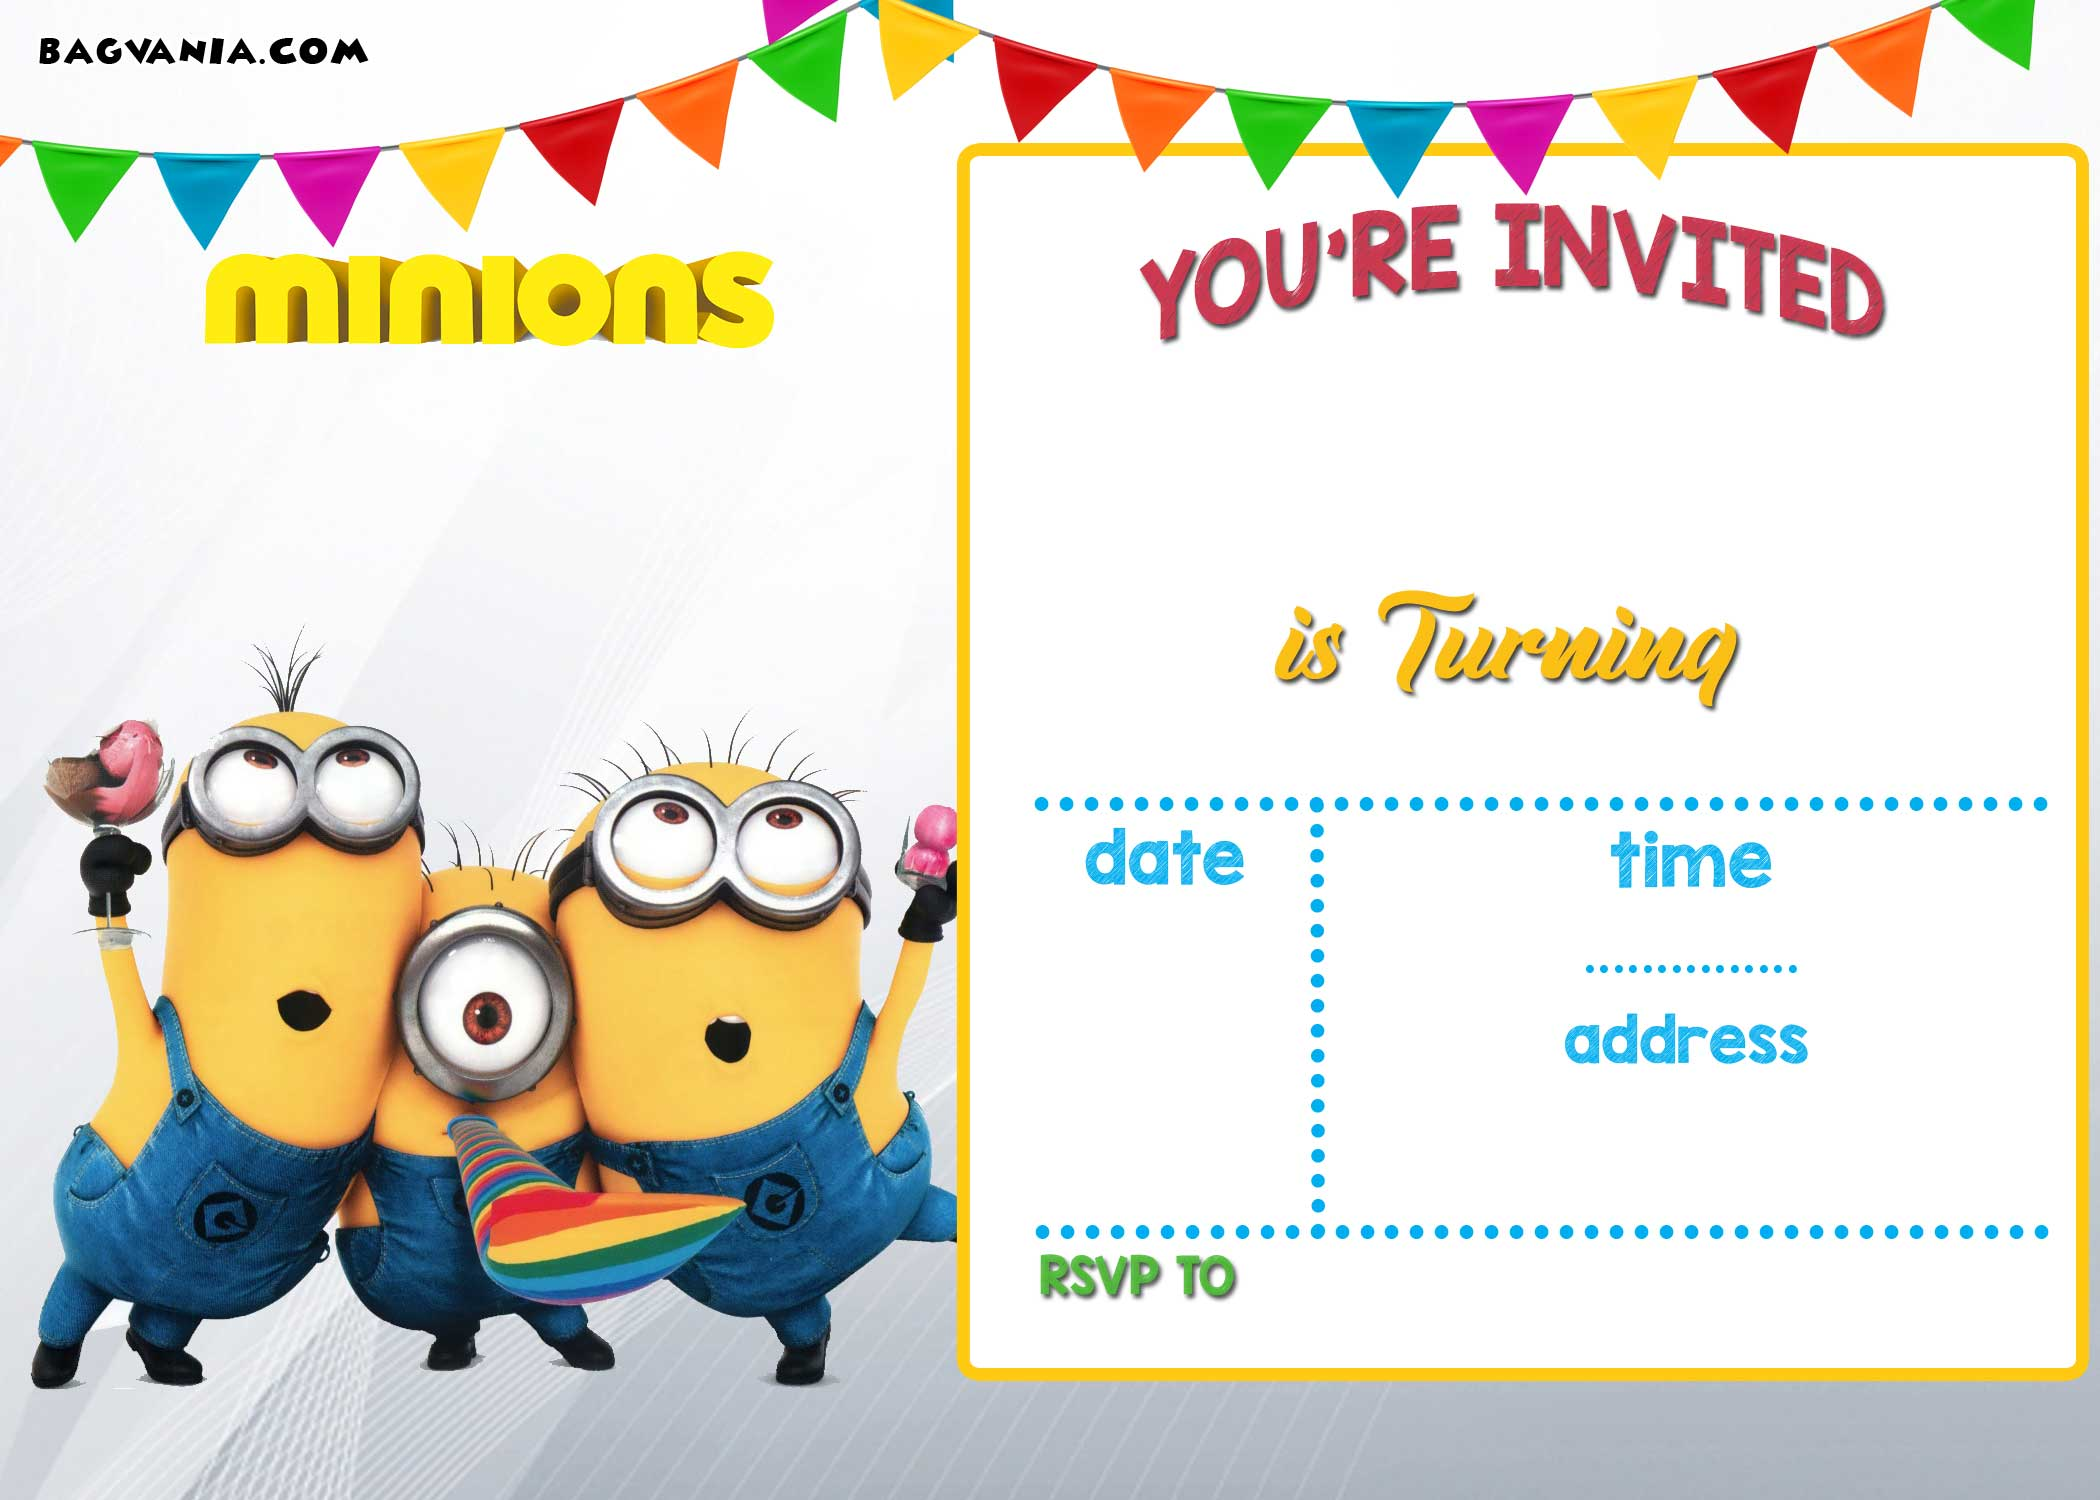 Awesome As Our Reader Request, We Add More Minion Birthday Party Invitation  Templates! More And More! To Invitation Template